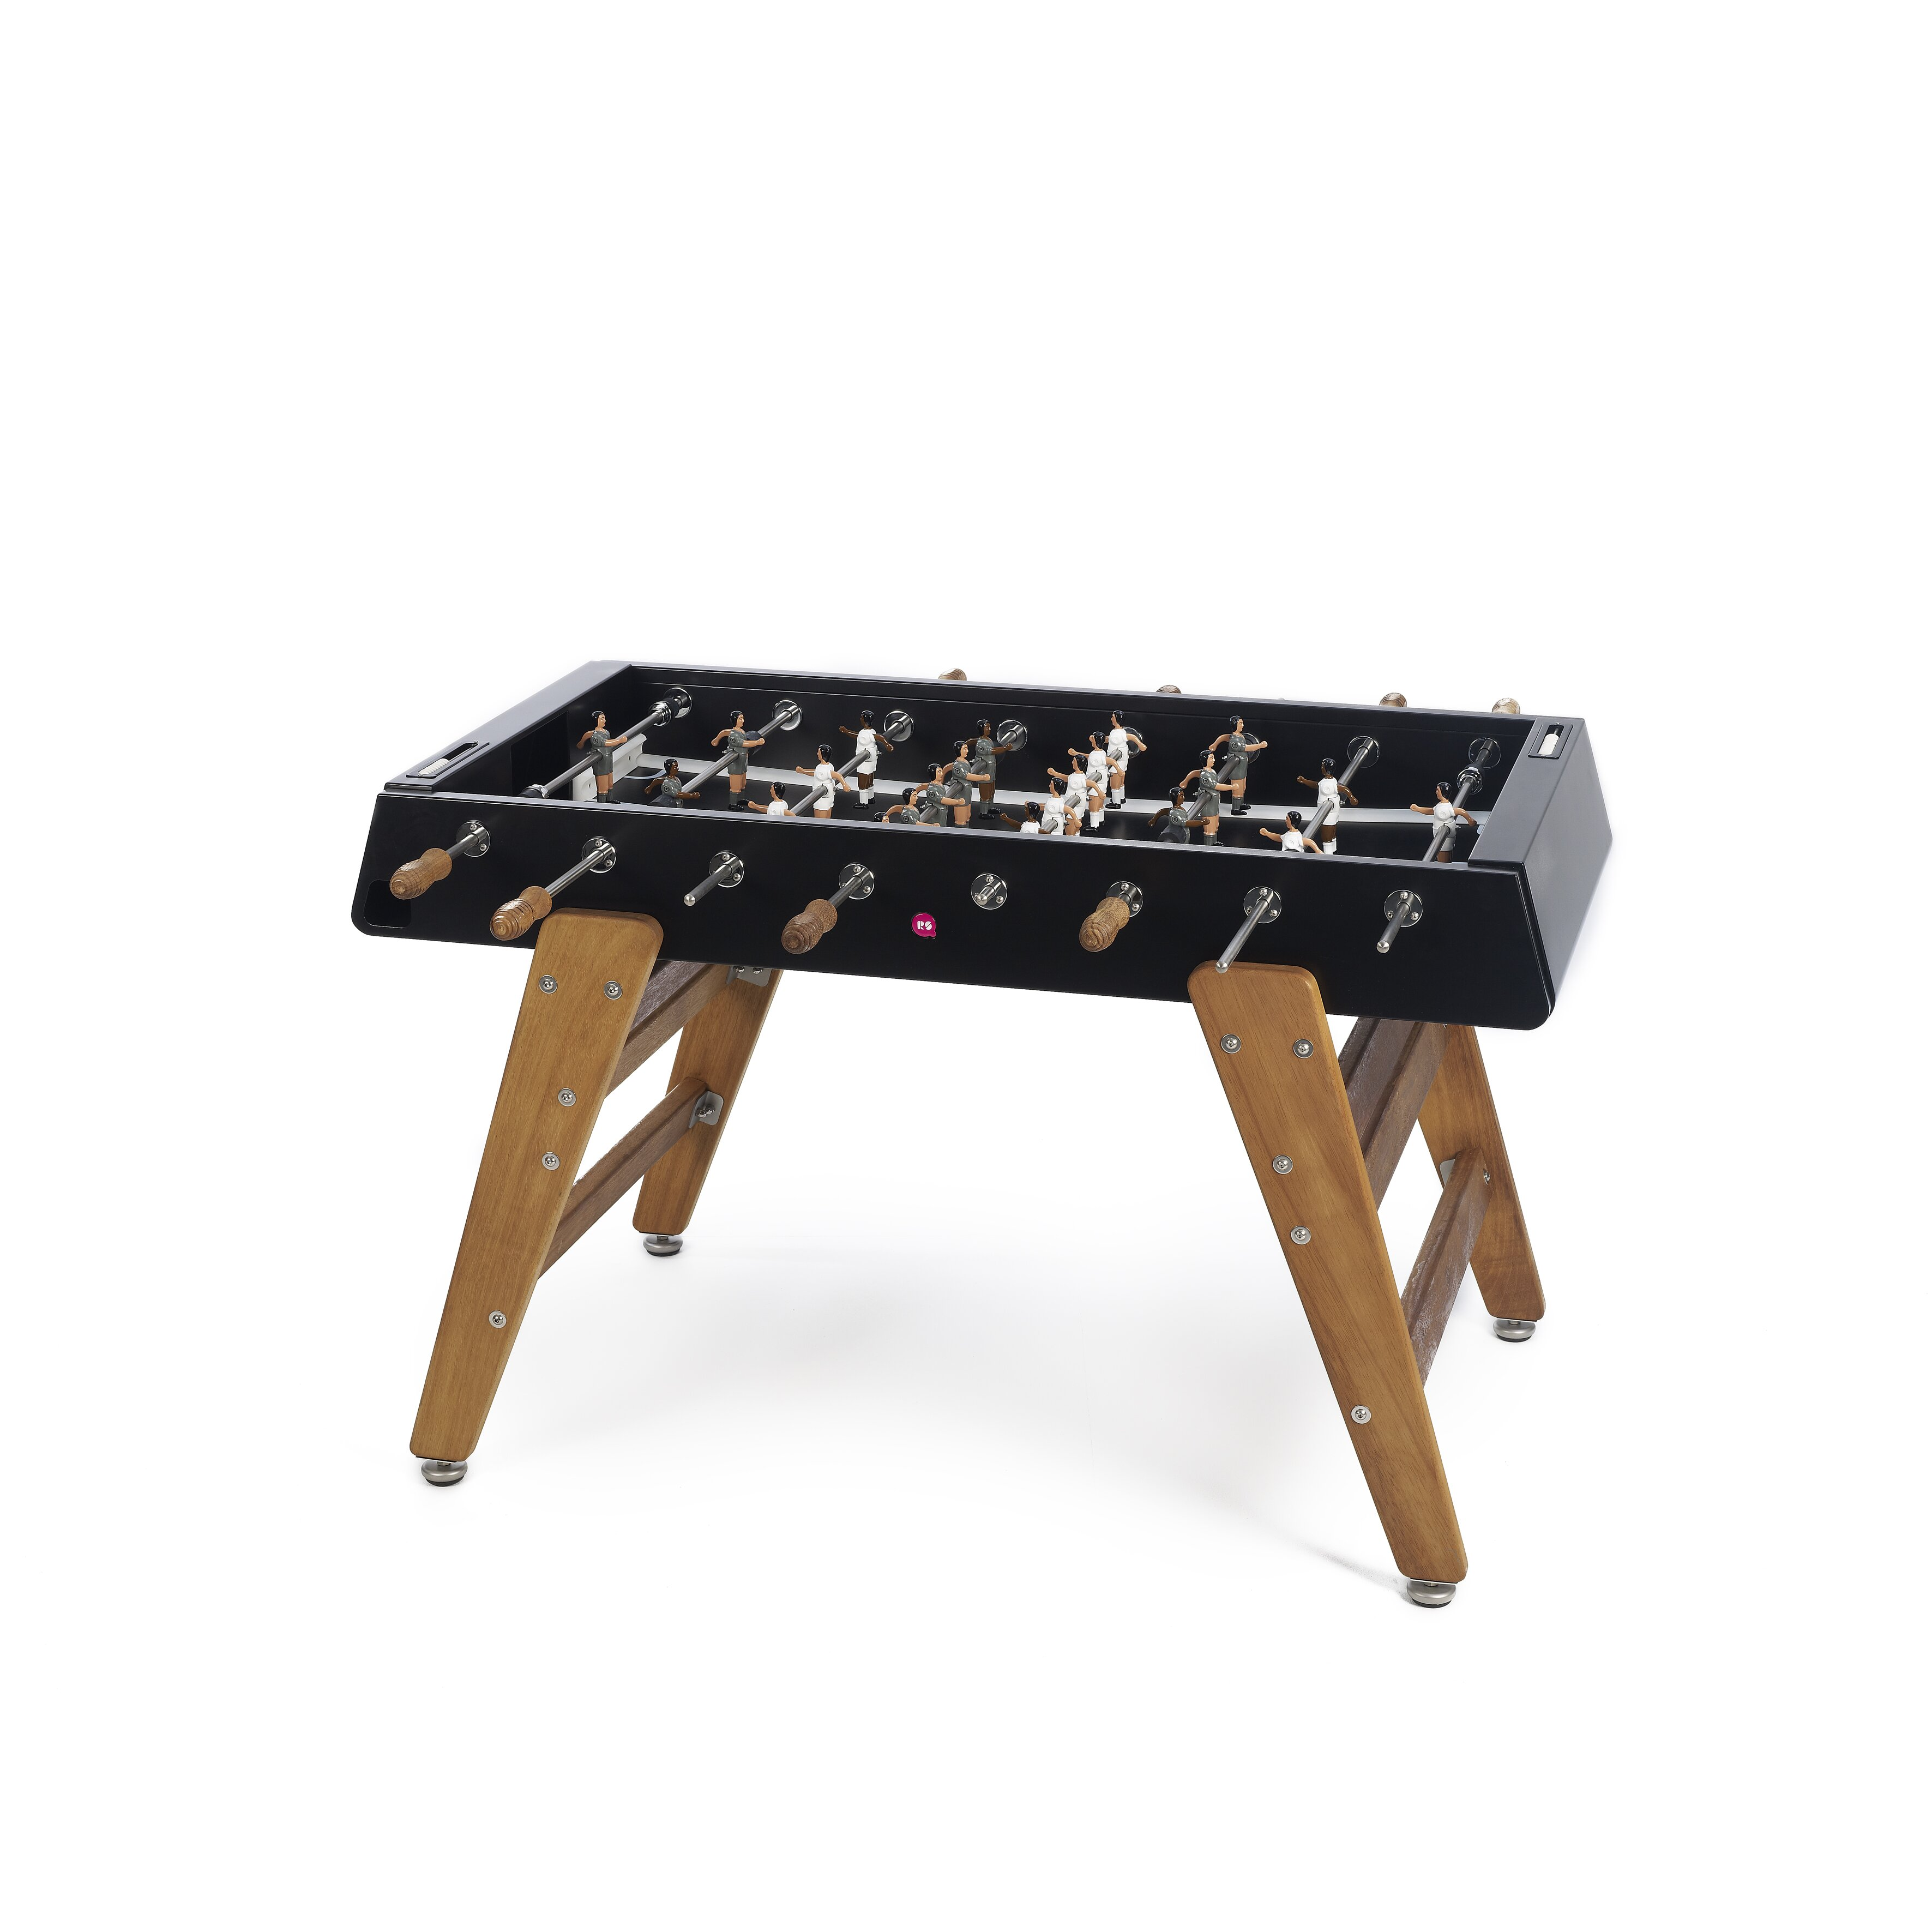 Rs barcelona rs 3 wood football table for Runescape exp table 1 99